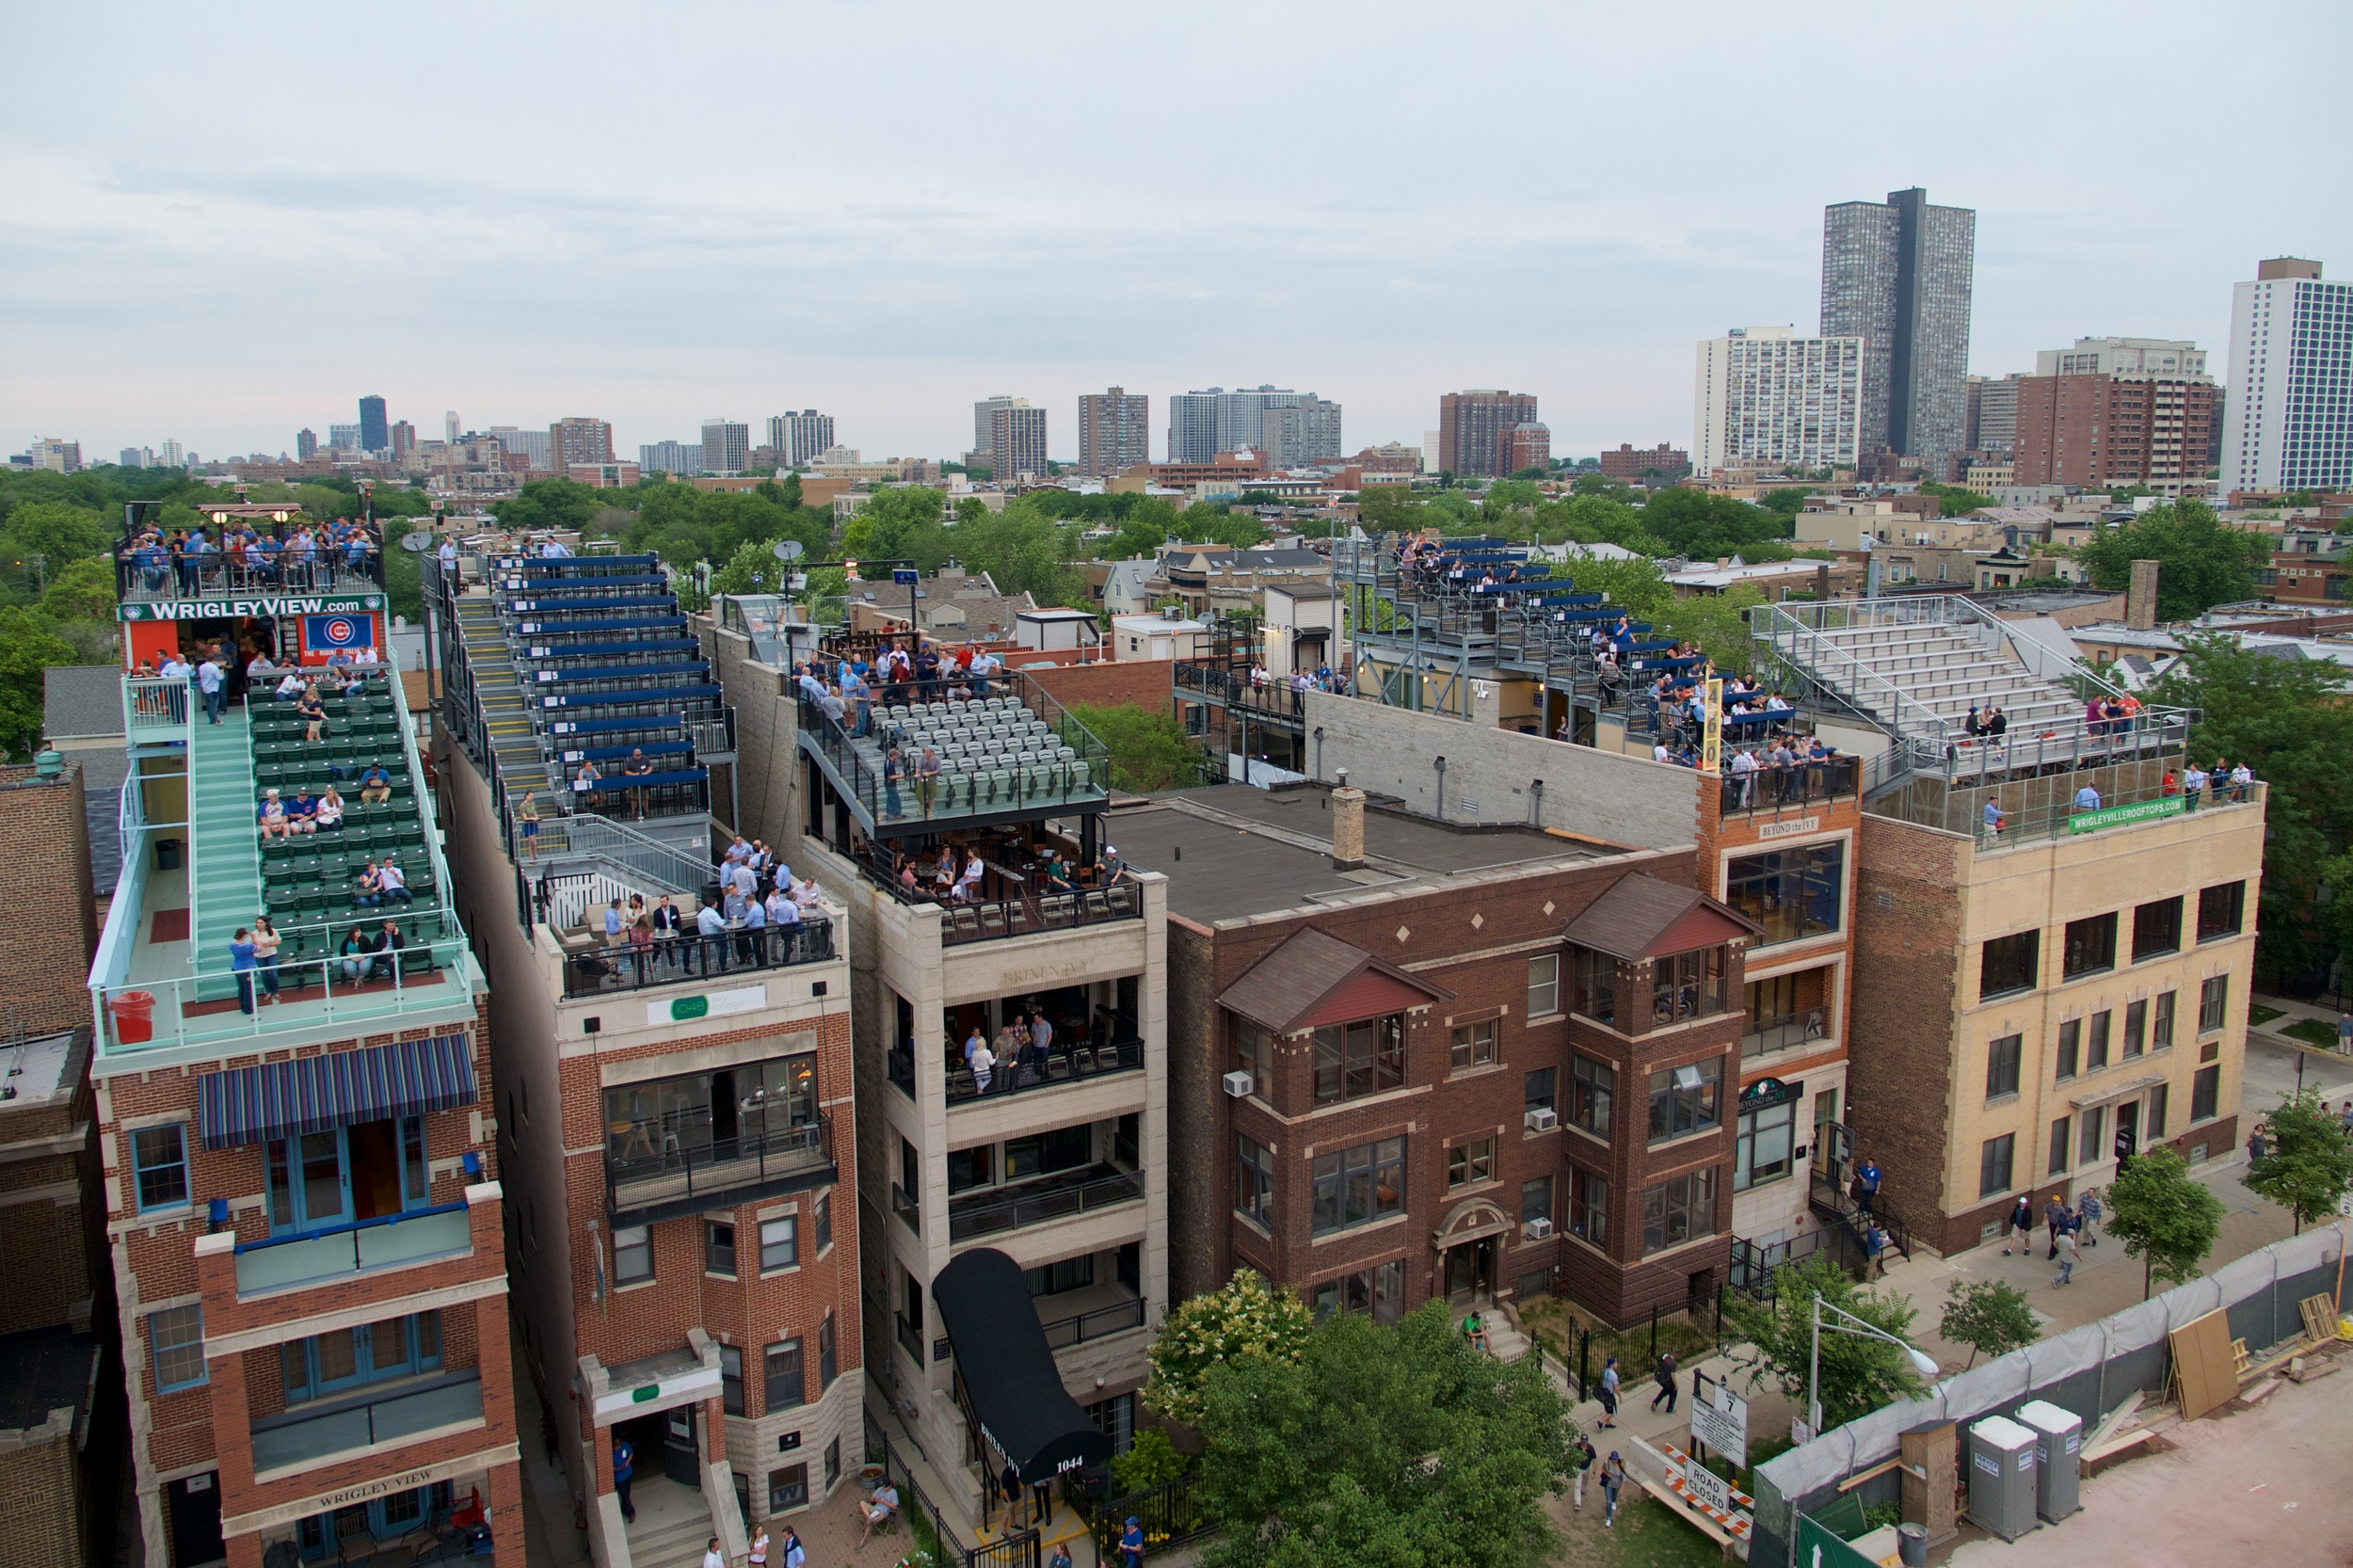 Seats on top of buildings outside of Wrigley Field